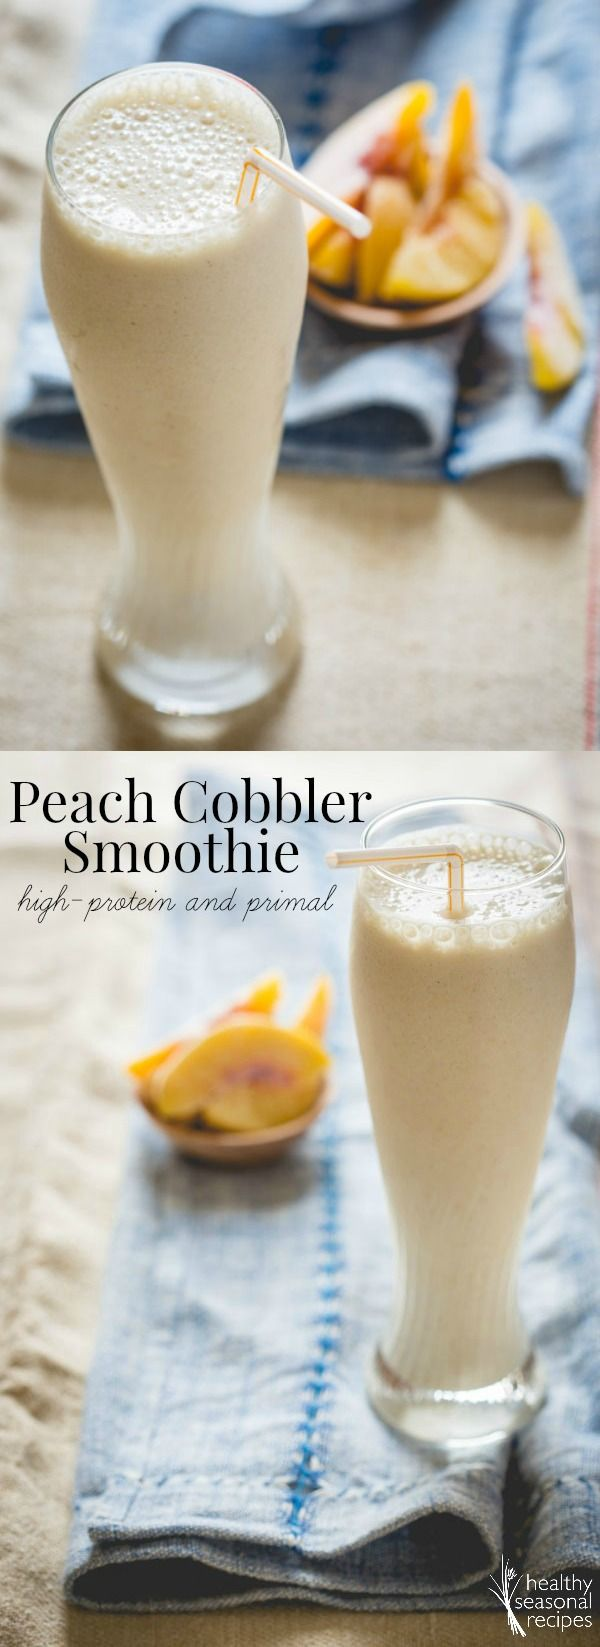 peach cobbler smoothie - Healthy Seasonal Recipes